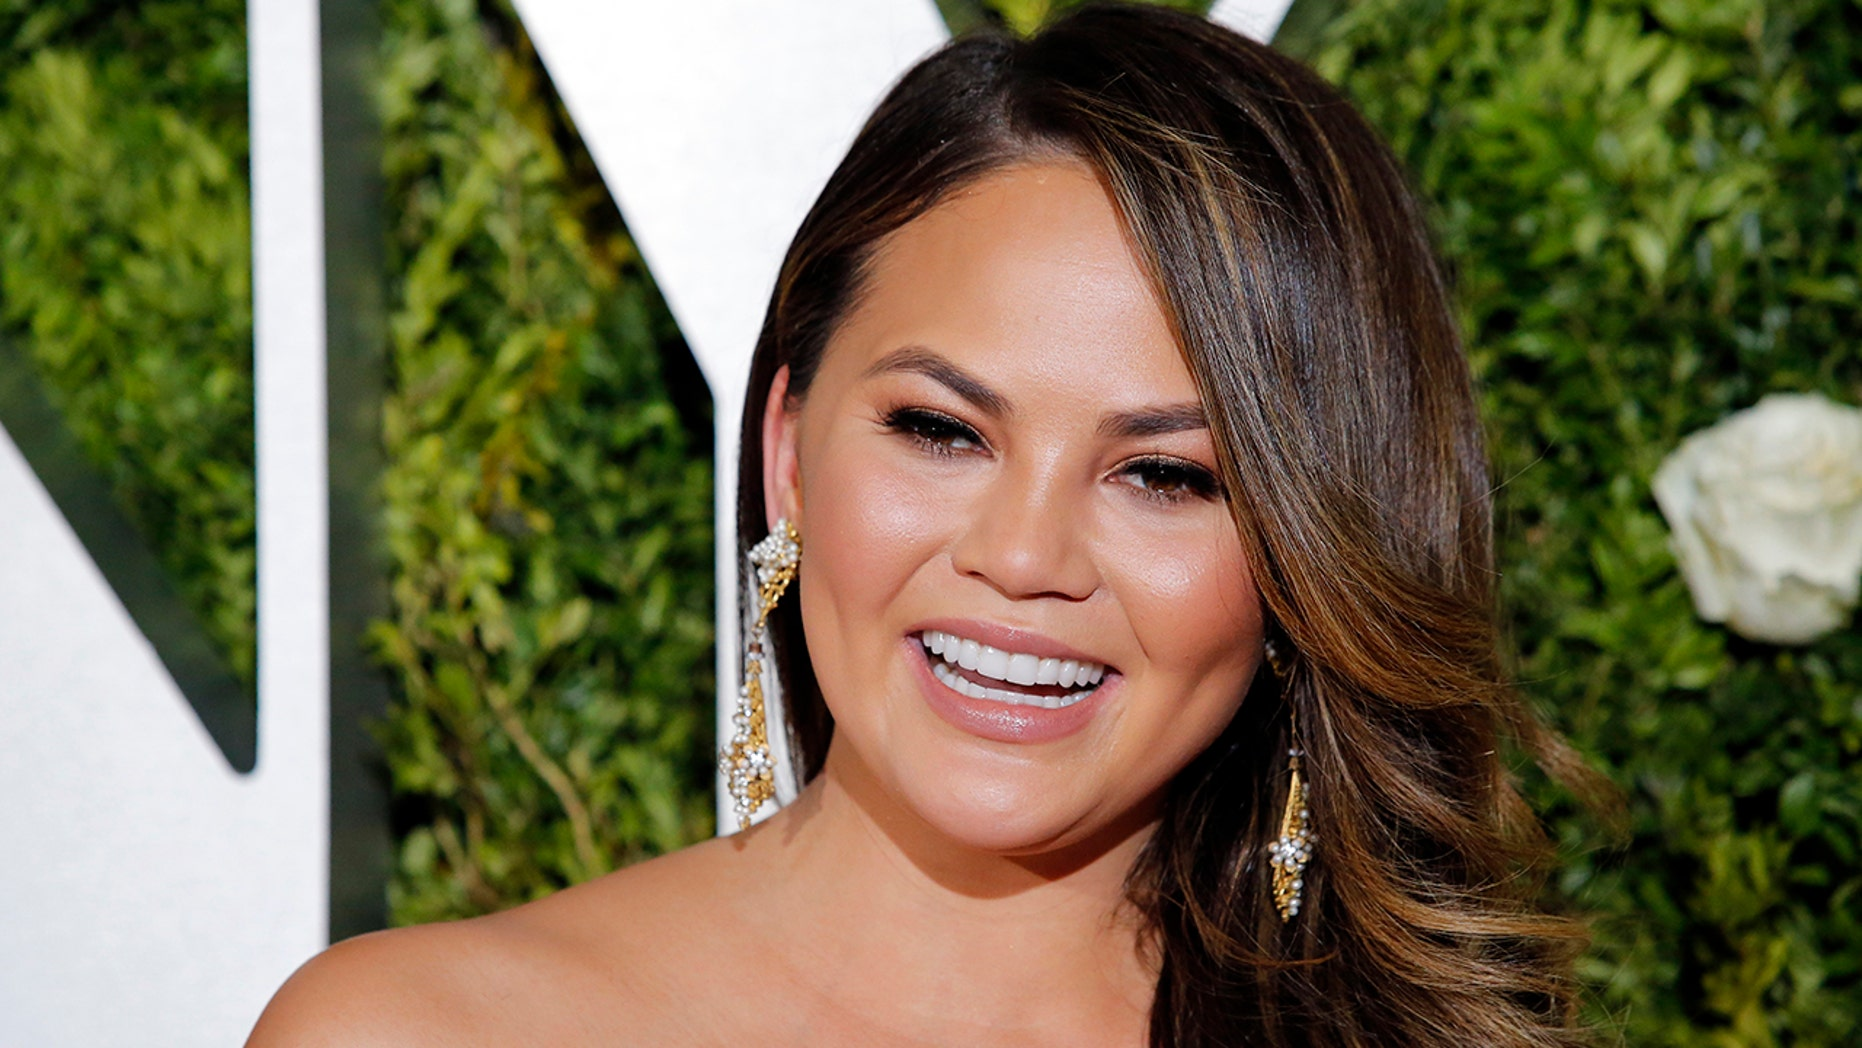 Chrissy Teigen leaves a generous tip, but the waitress said she didn't keep it all.